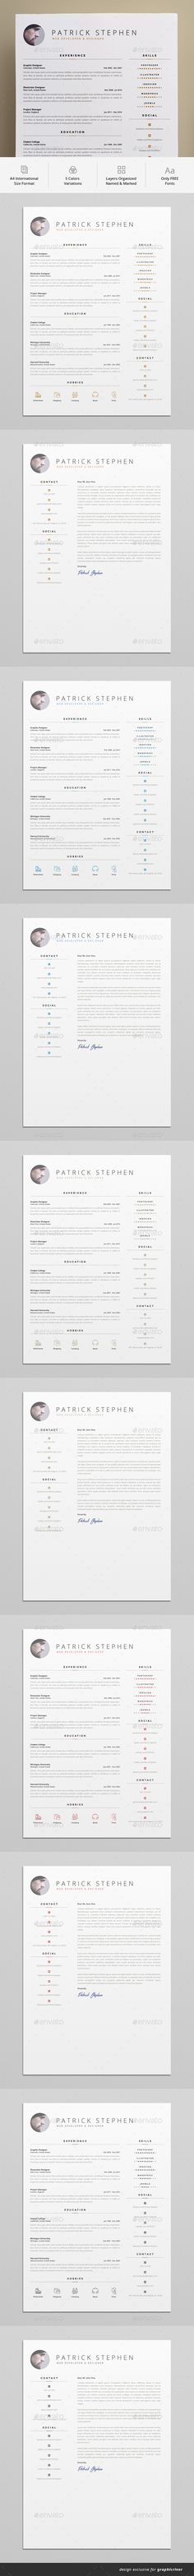 Resume Template, Cv template and Ai illustrator - new resume format free download